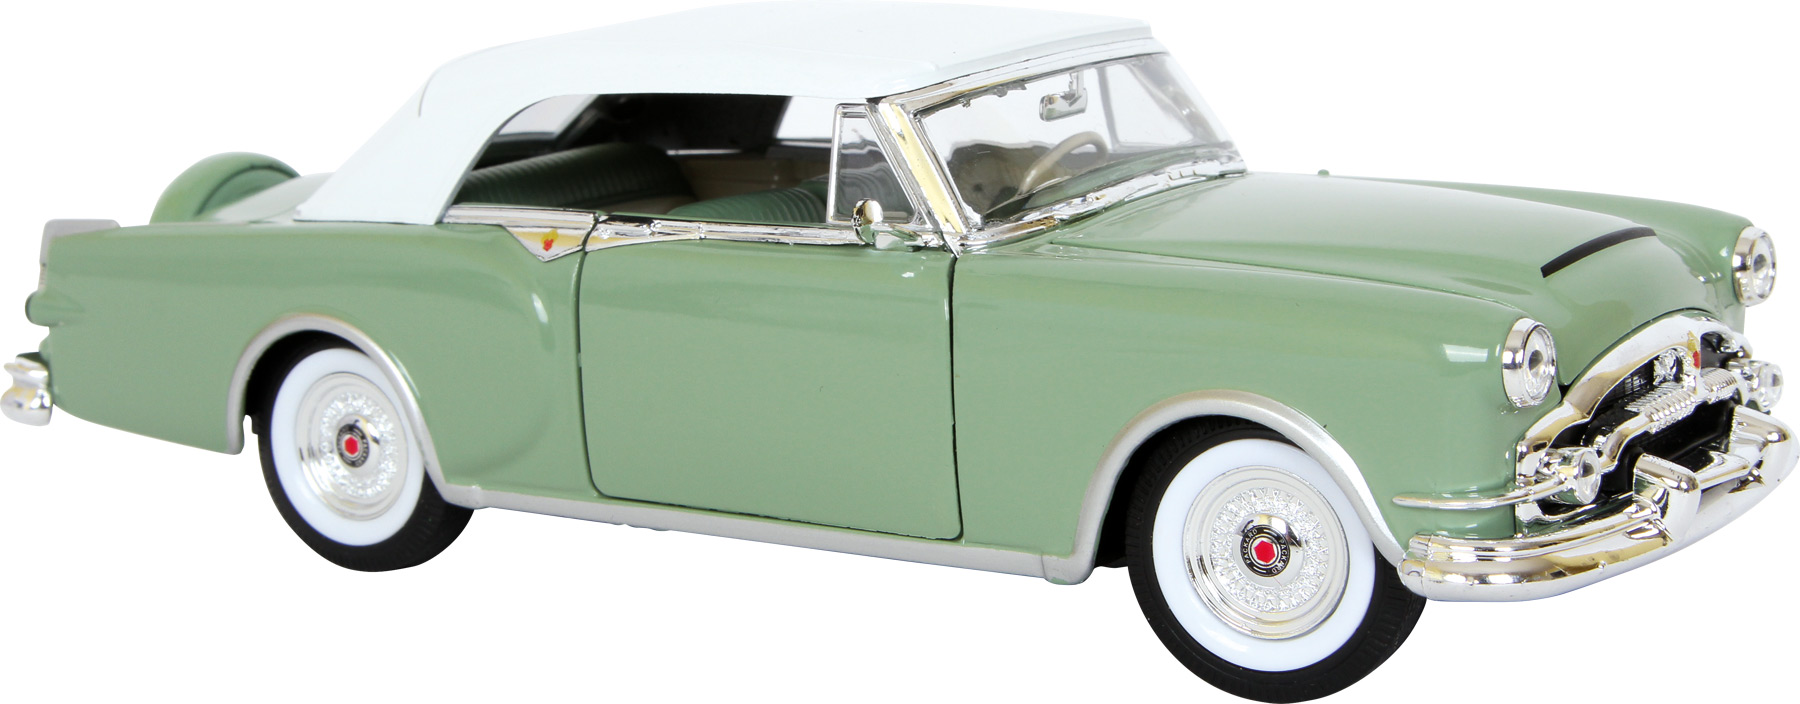 Model automobilu Packard Caribbean